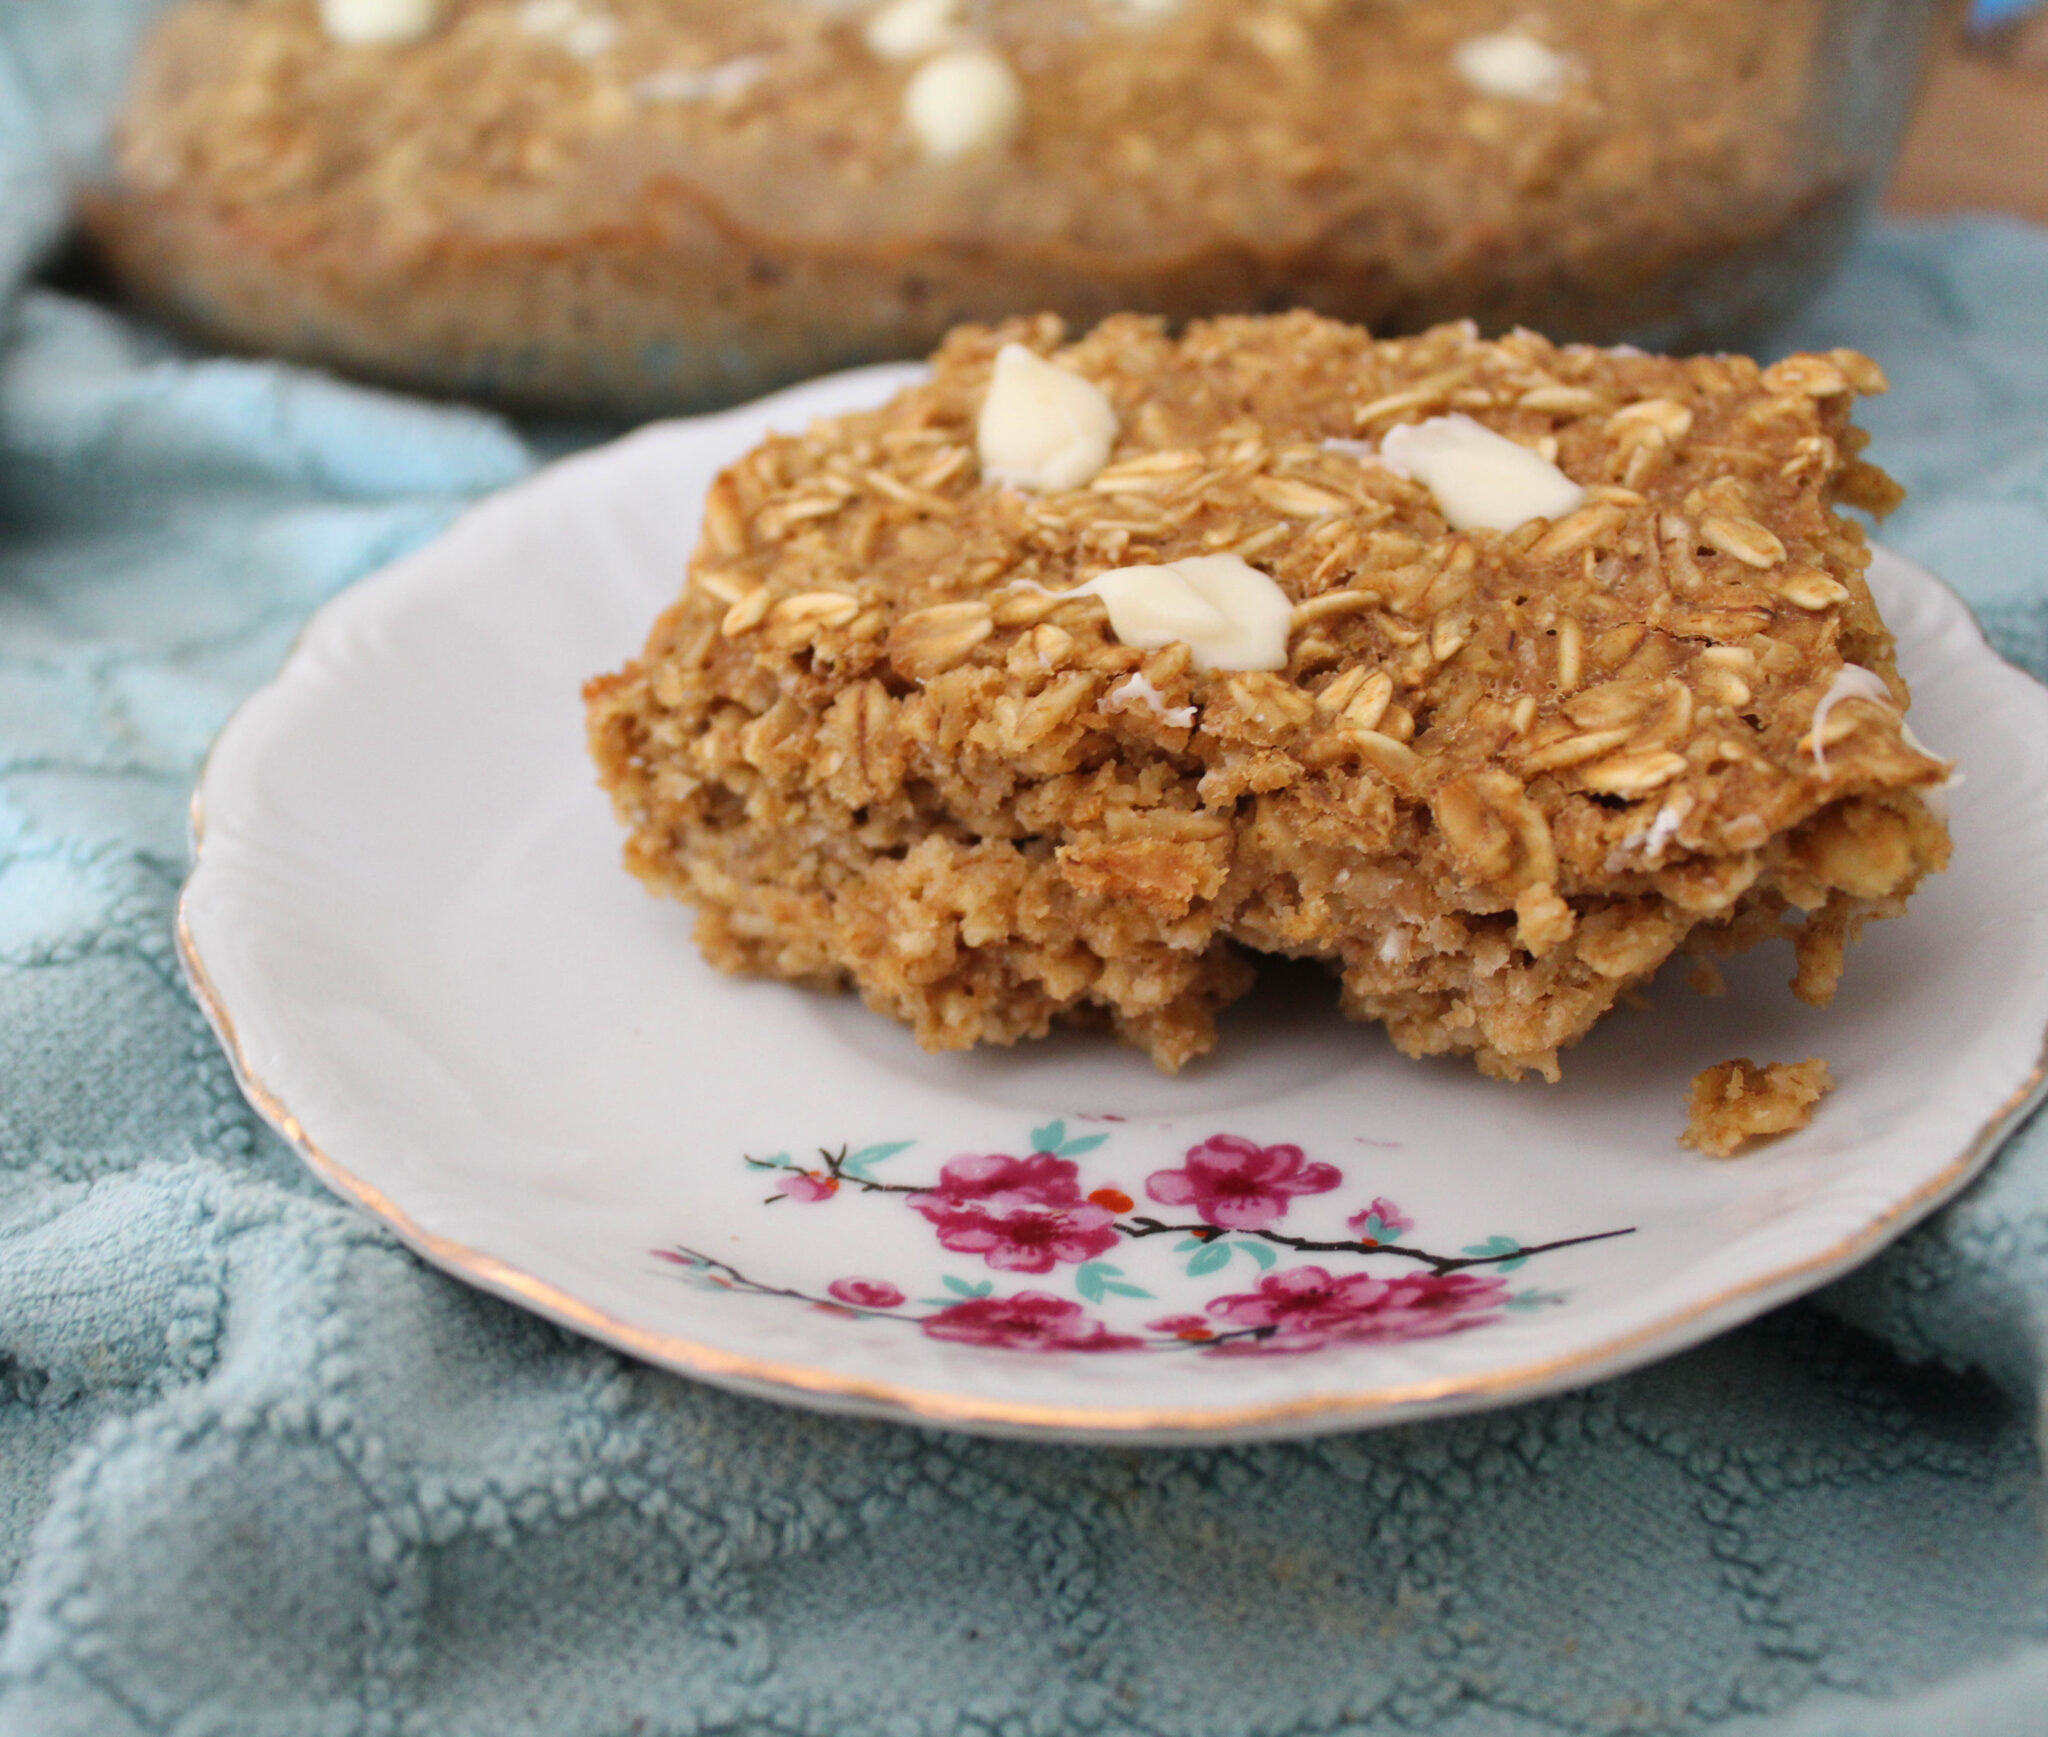 """This Peanut Butter Chocolate Chip Baked Oatmeal is one of my family's favorite ways to jazz up a staple. It's a Trim Healthy Mama """"E"""" and sugar-free."""